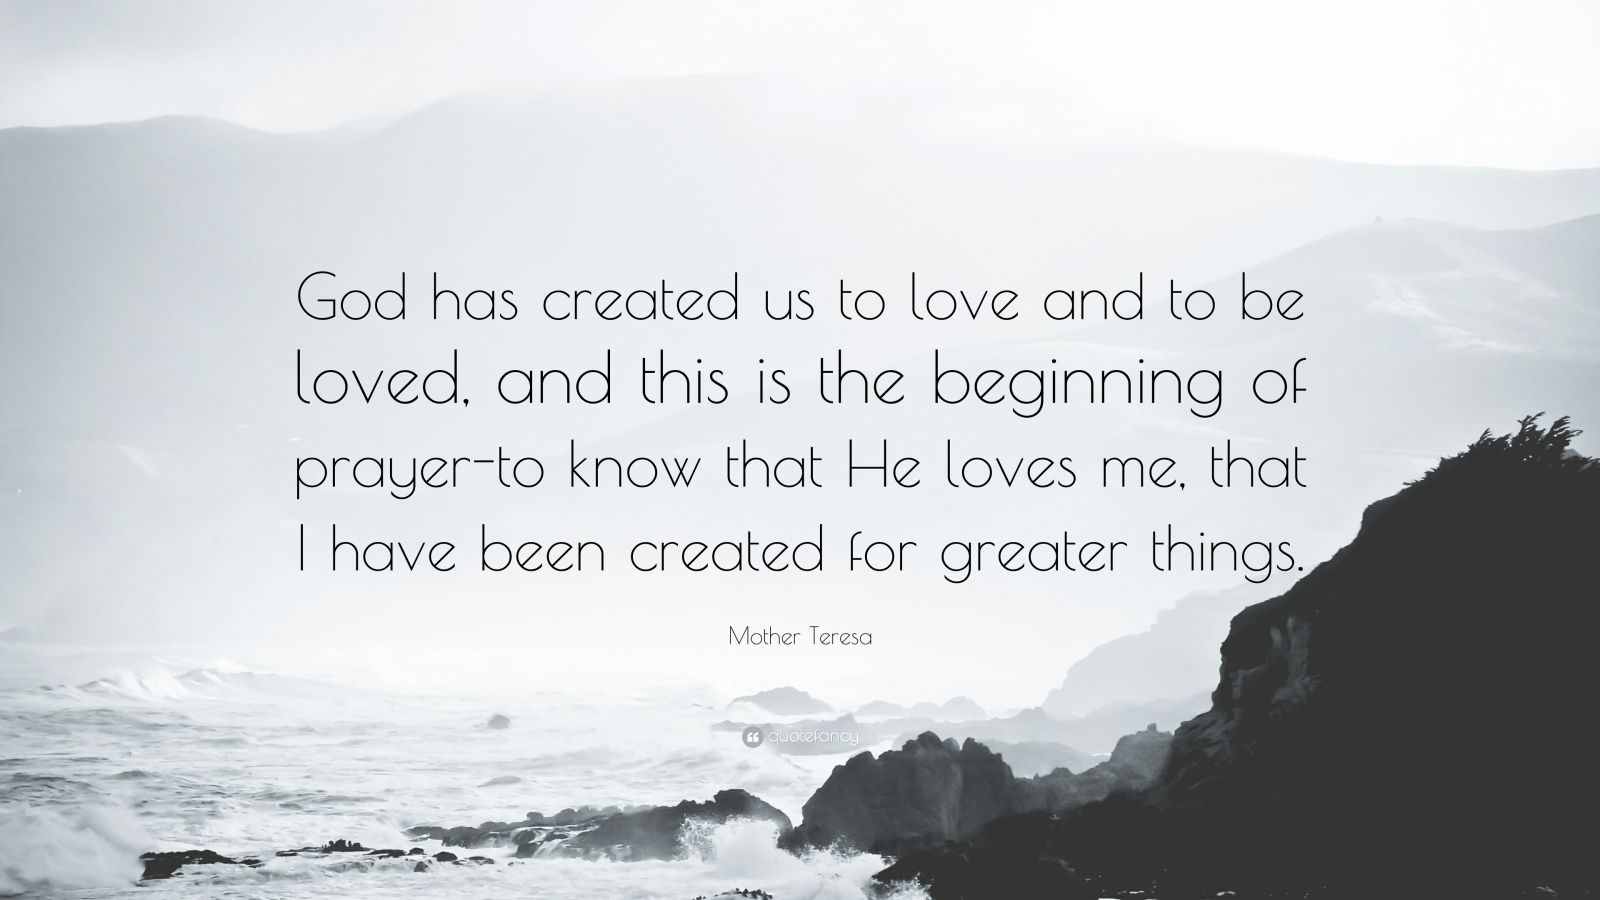 """Mother Teresa Quote: """"God has created us to love and to be loved, and this is the beginning of prayer-to know that He loves me, that I have been created for greater things."""""""